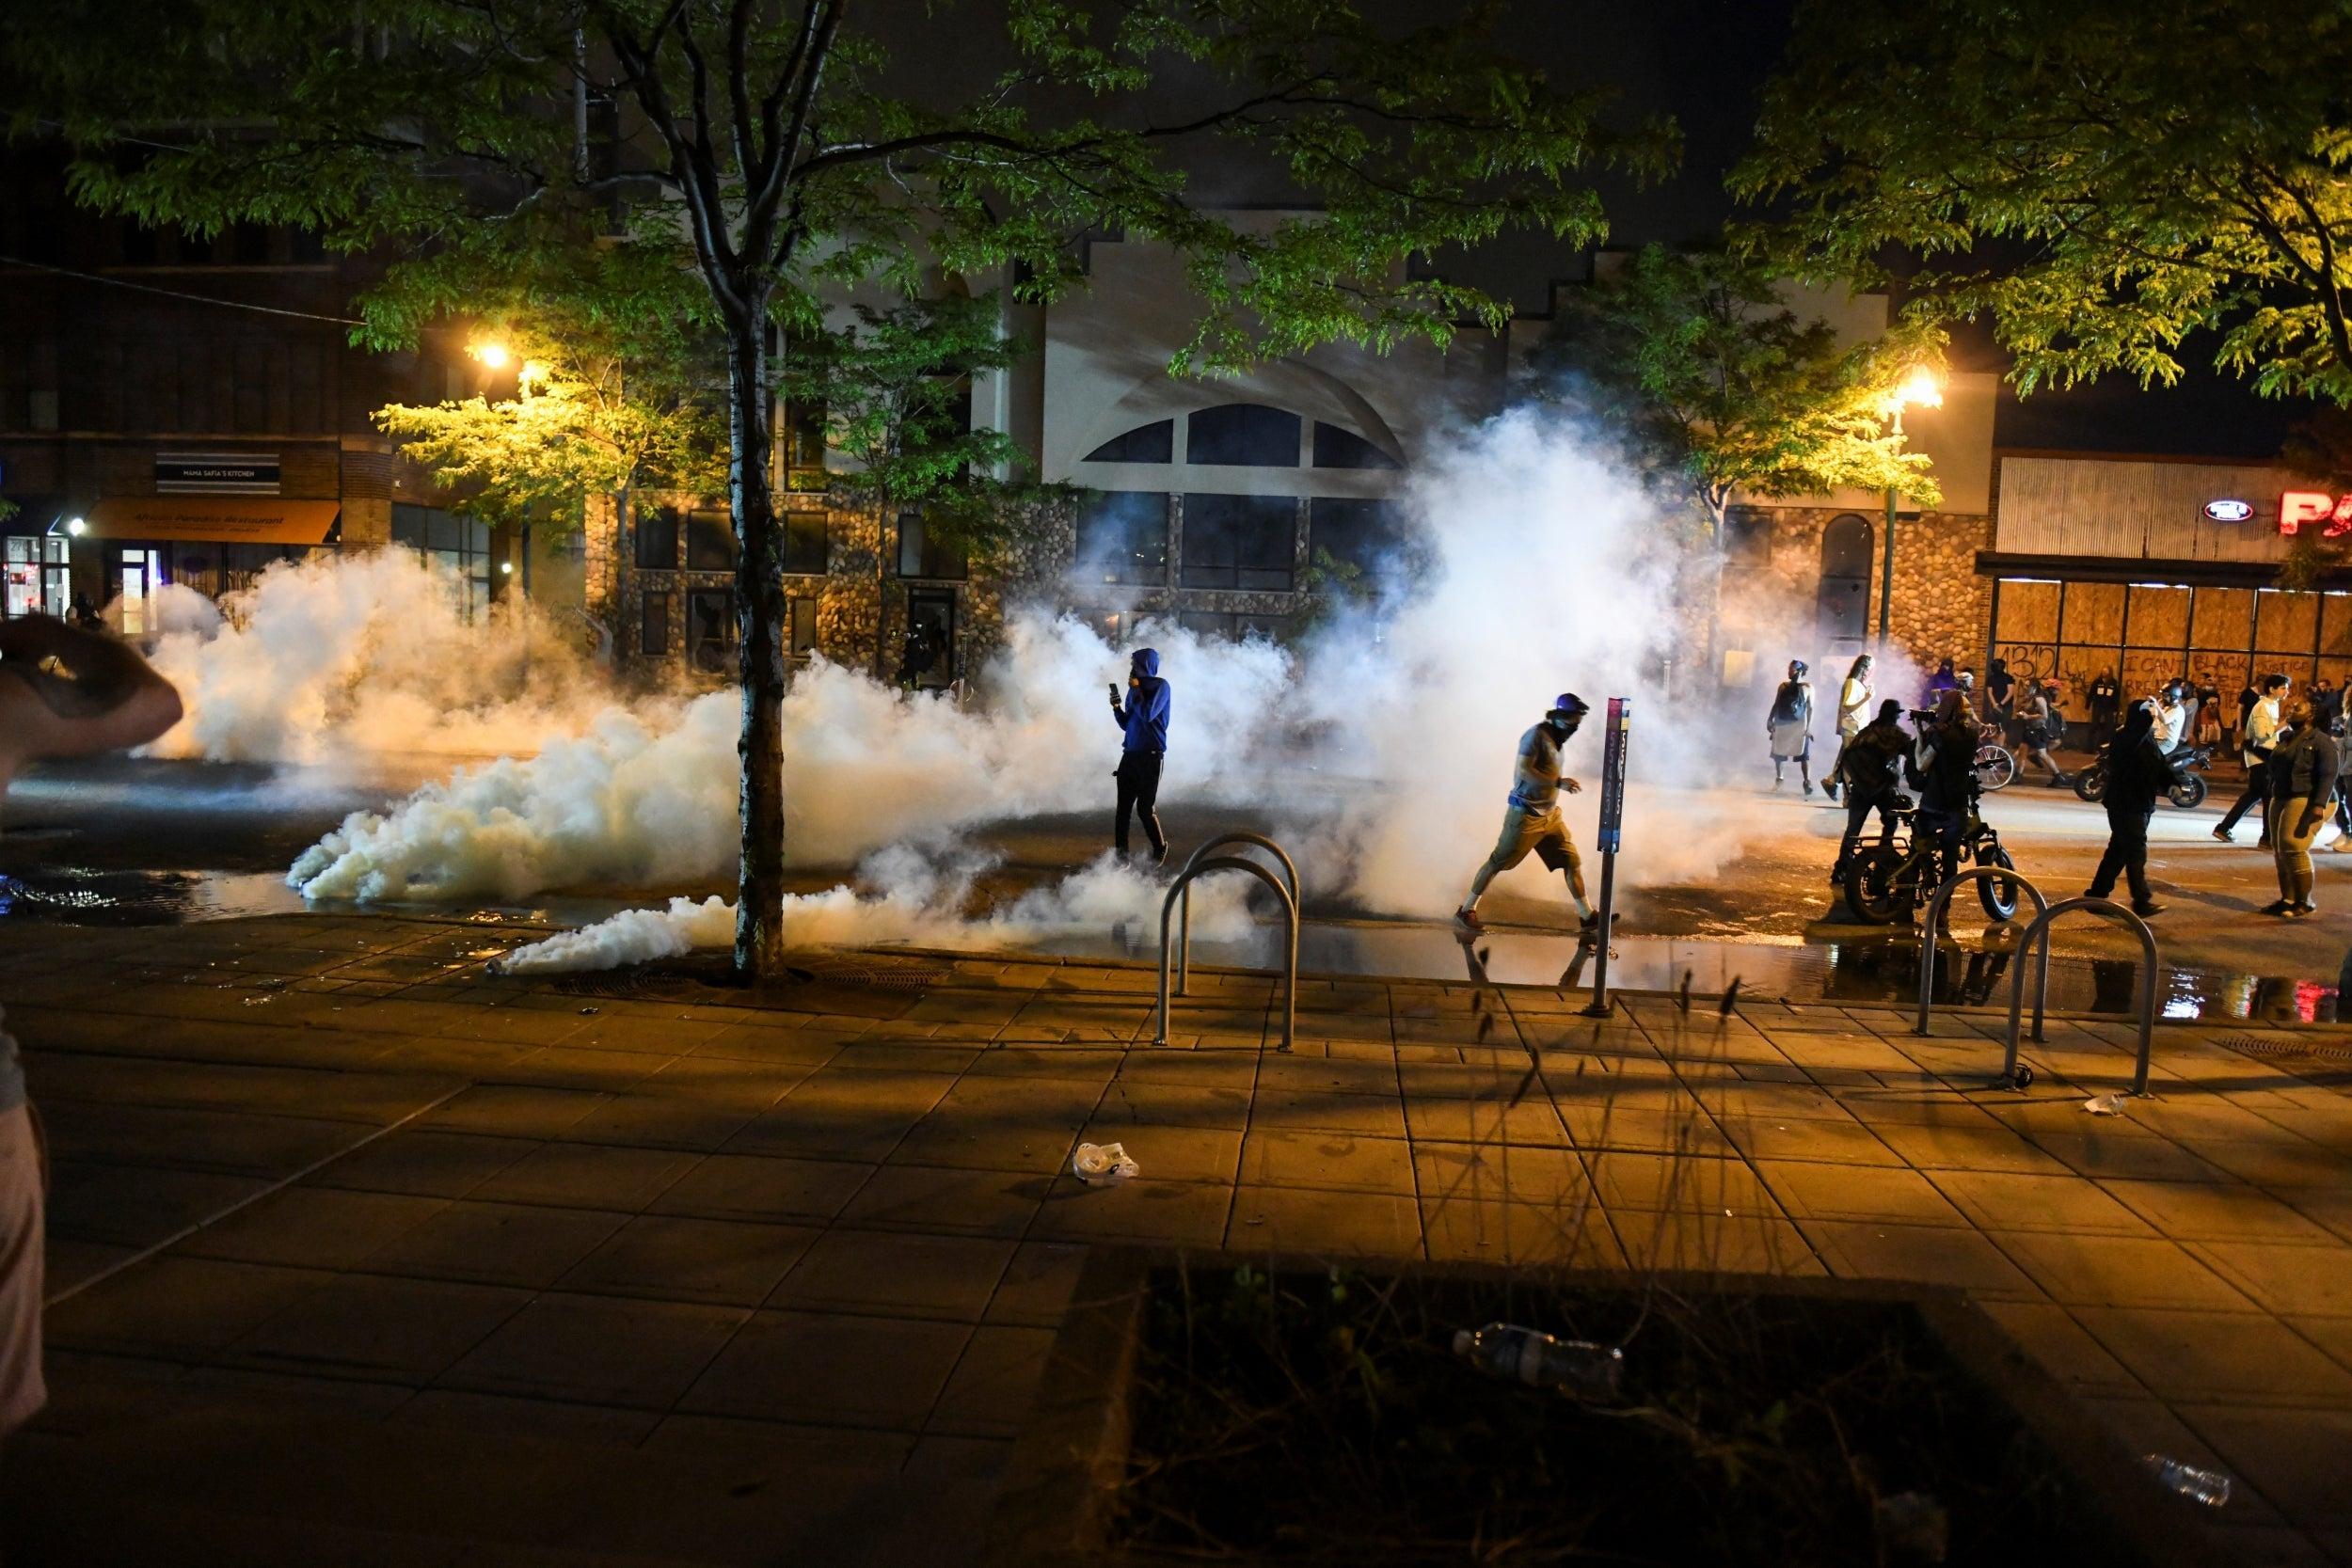 George Floyd protests: One dead in shooting amid riots and looting as Minneapolis mayor appeals for calm